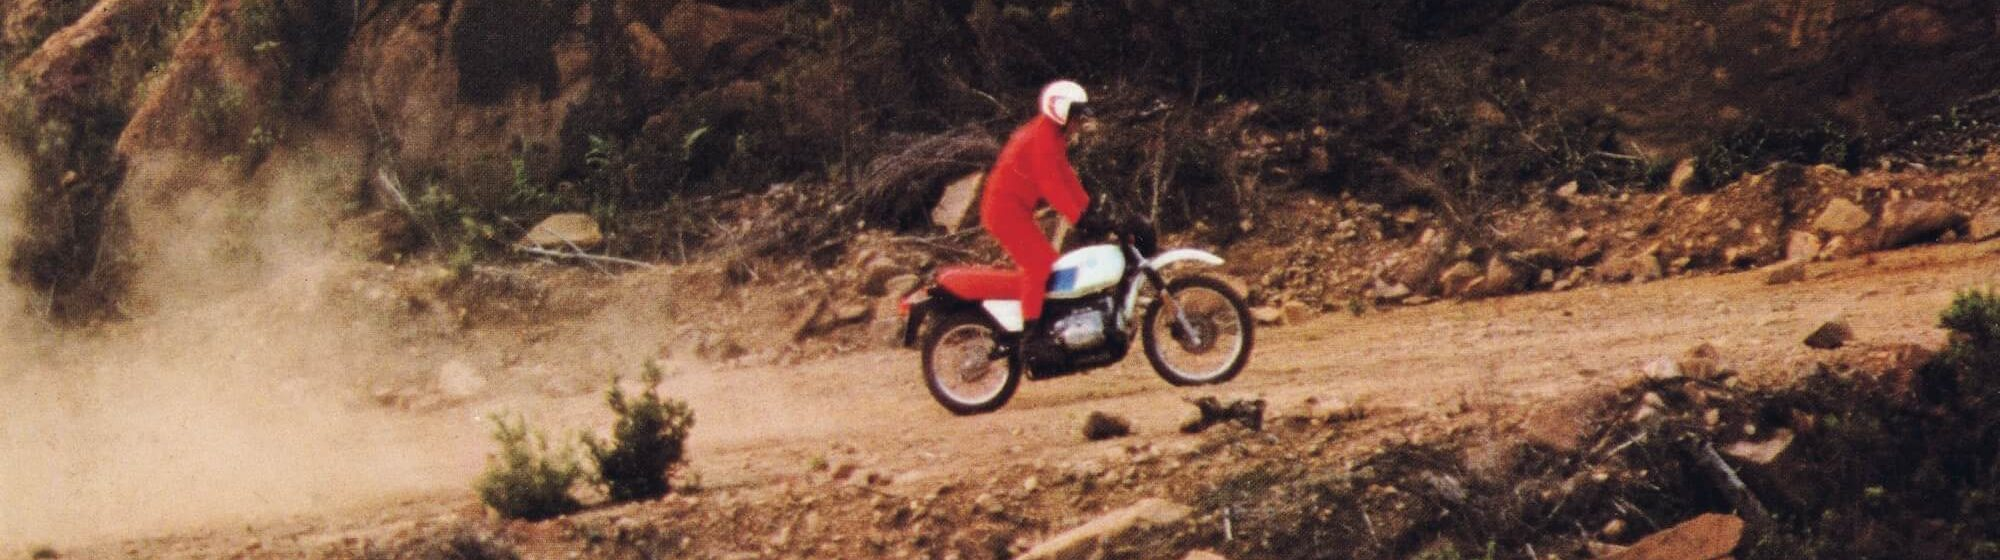 The BMW R80G/S in 1980: the first motorcycle featuring the 'monolever'